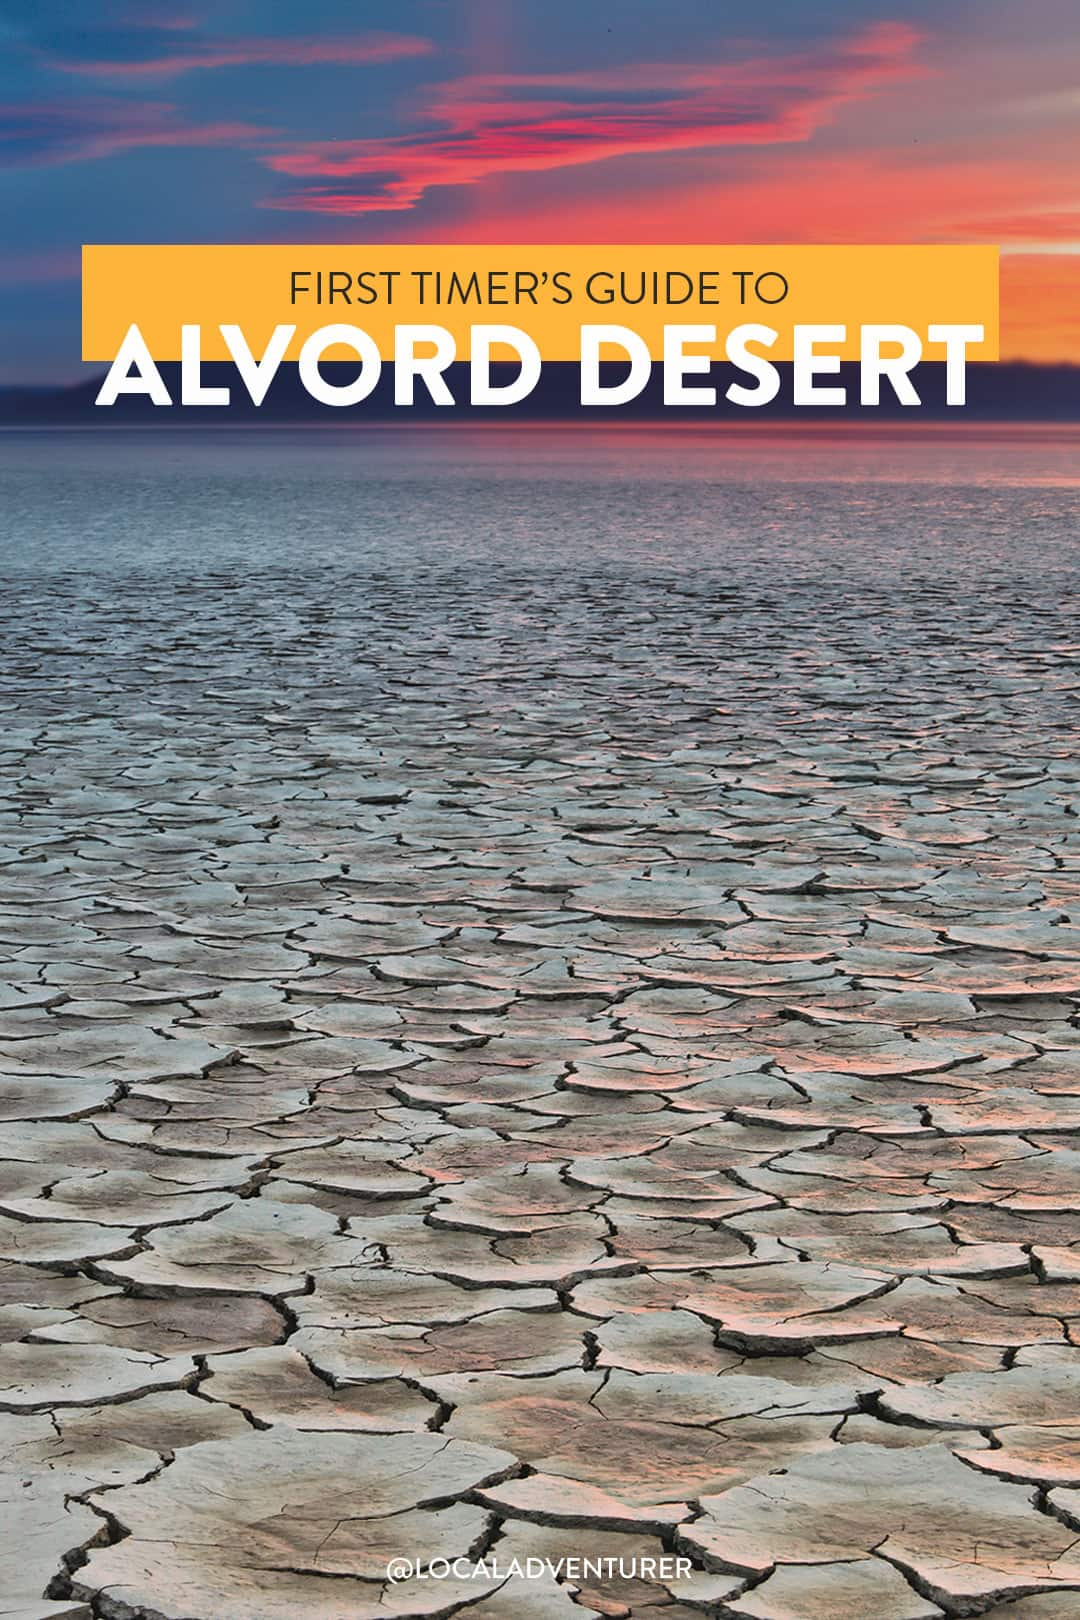 Alvord Desert Oregon - What You Need to Know Before You Go